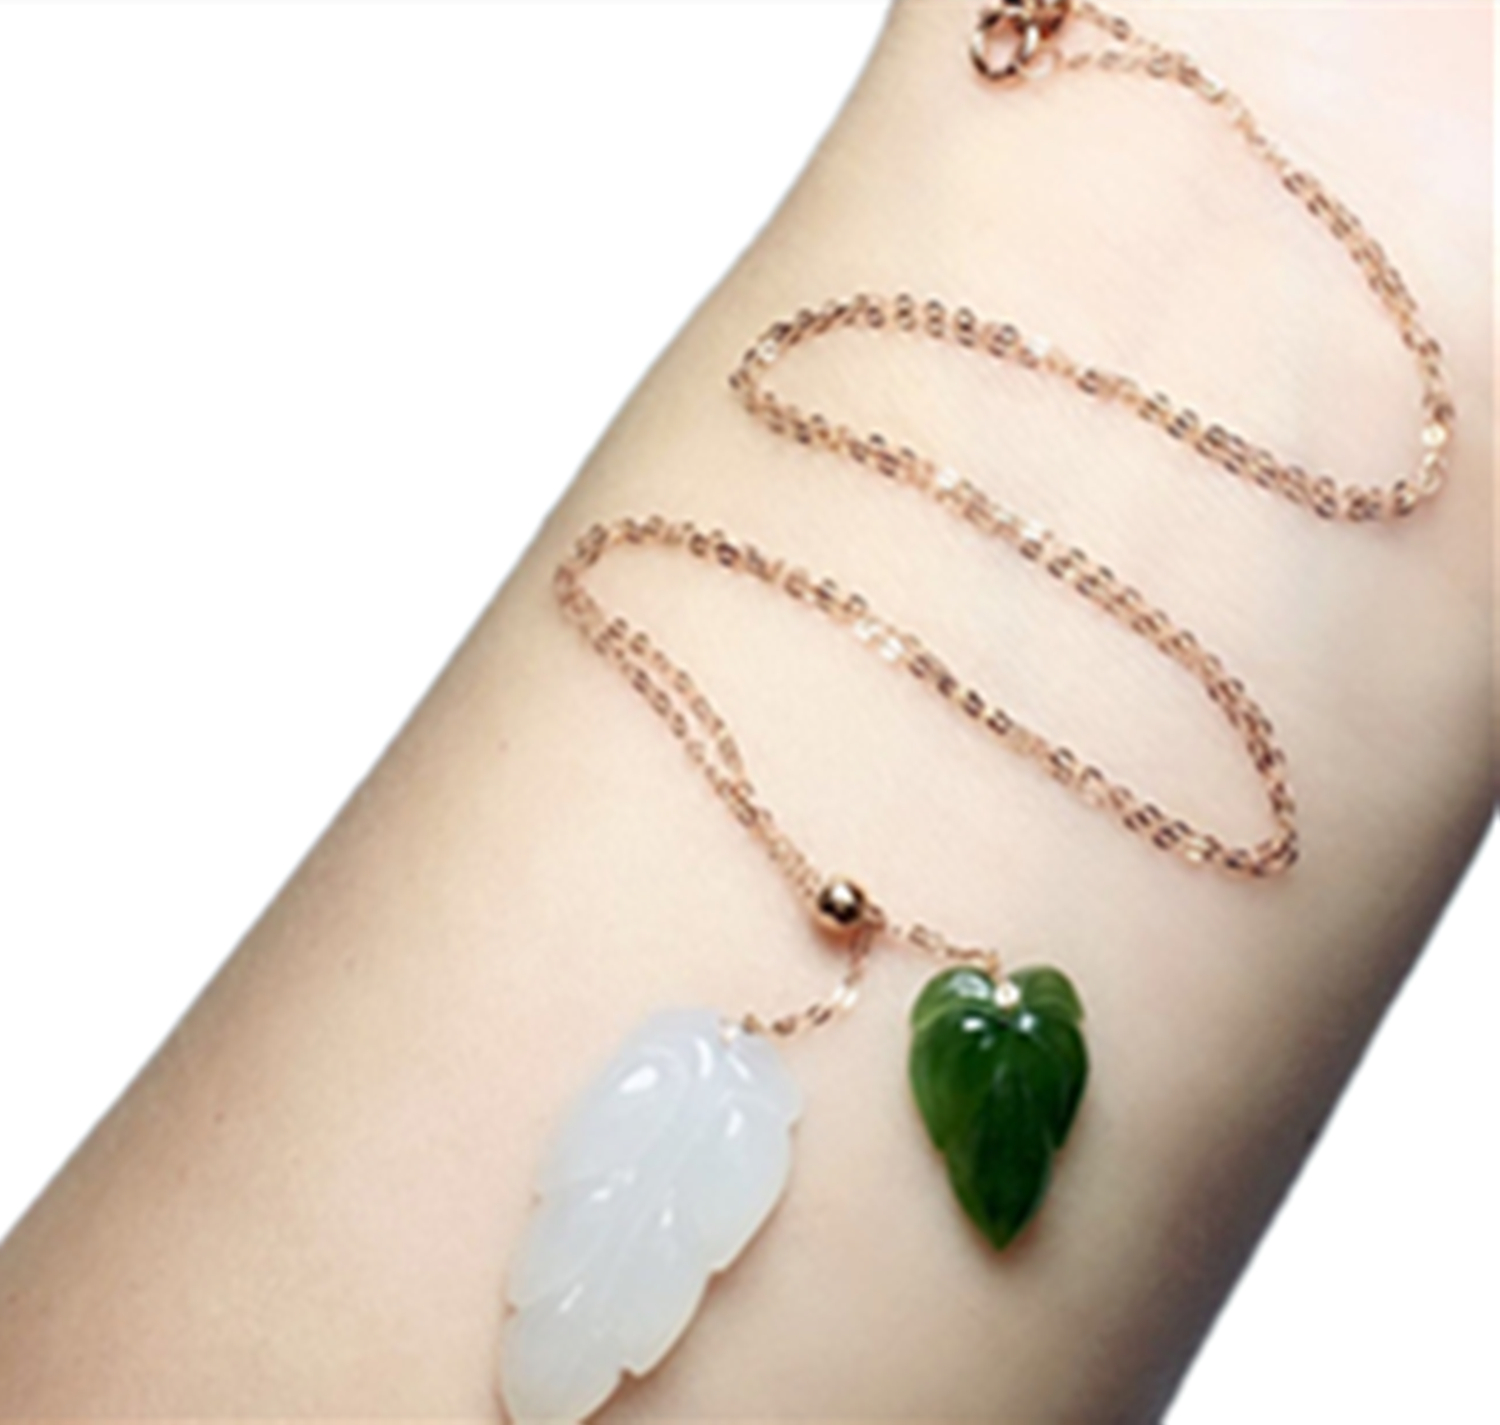 New 18K gold inlaid natural Hetian white jade leaf pendant necklace with certificateNew 18K gold inlaid natural Hetian white jade leaf pendant necklace with certificate